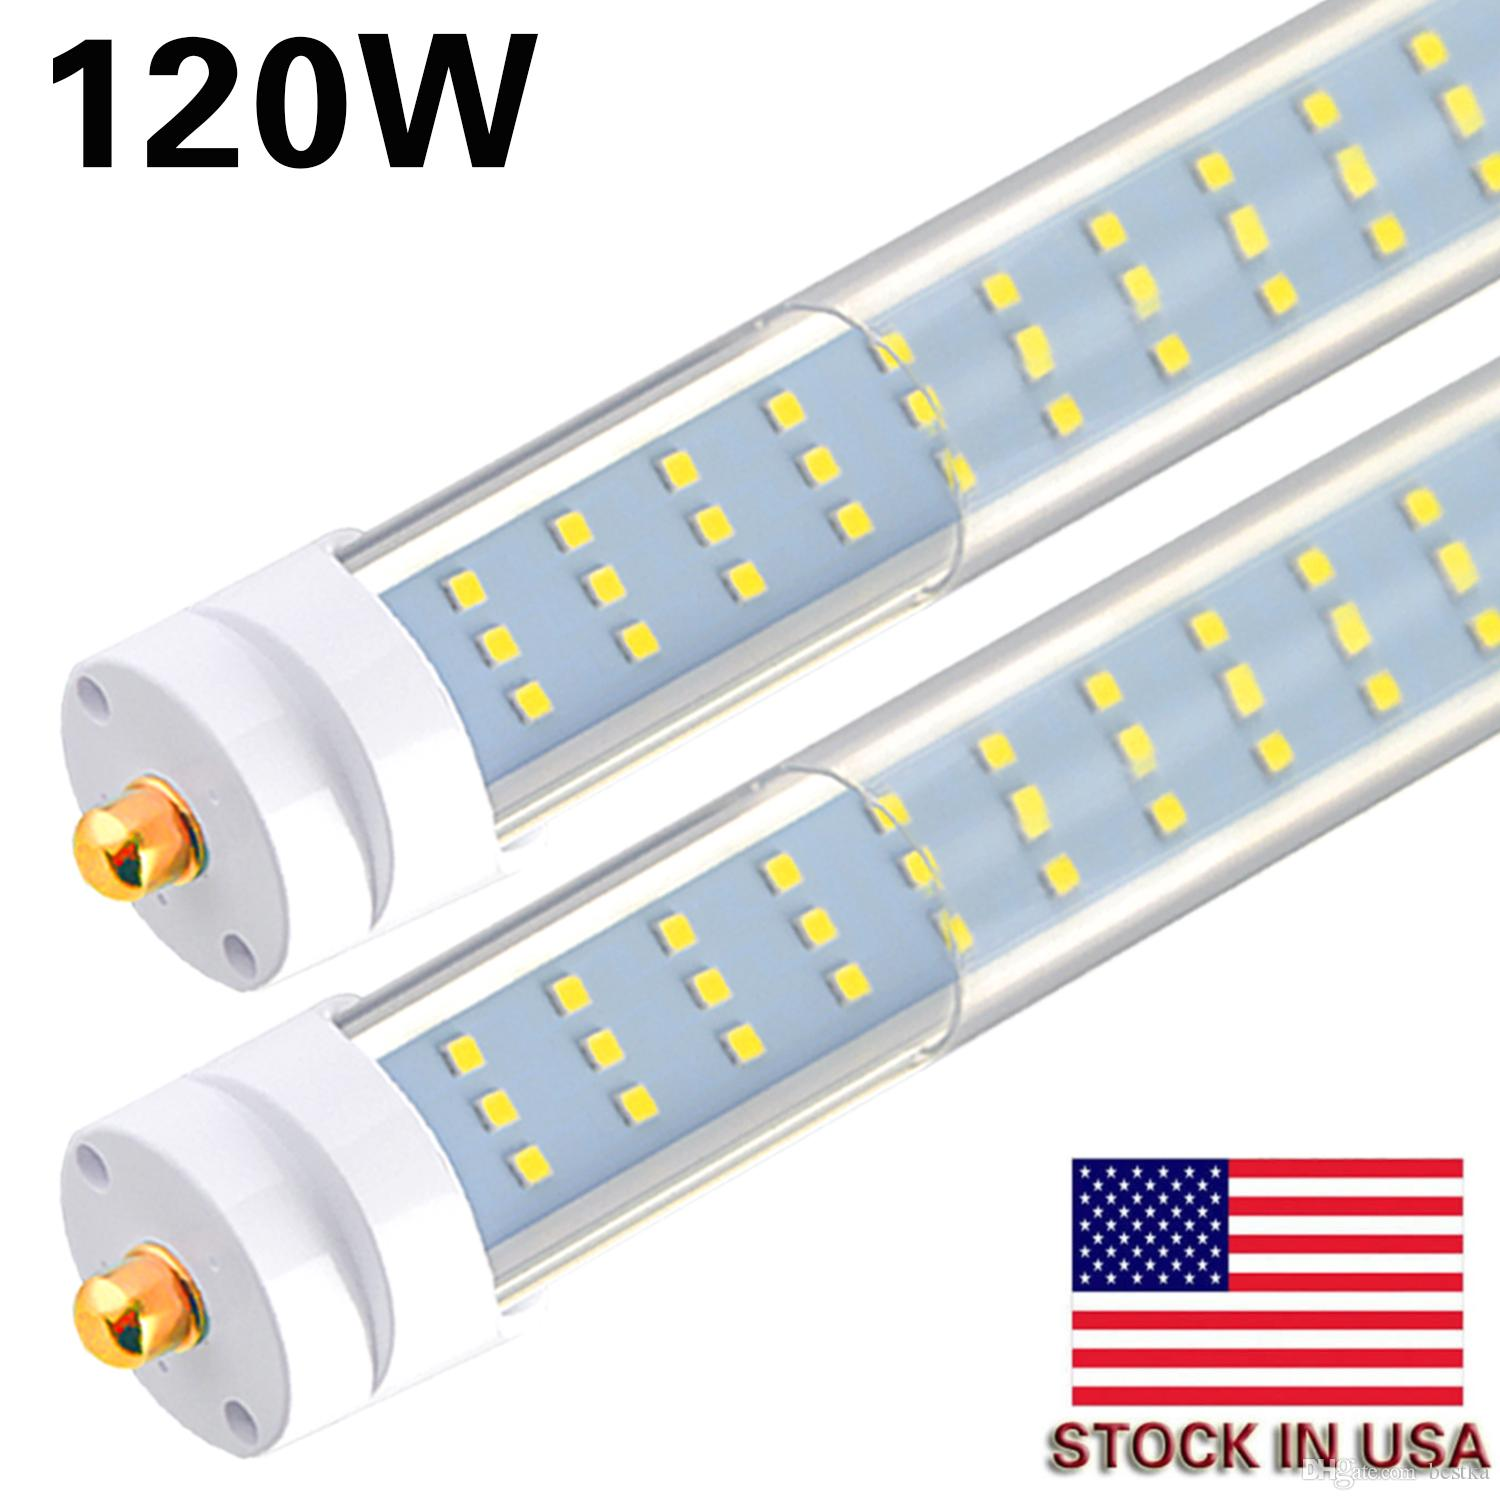 hight resolution of 8 25pcs t8 t12 led tube light 120w 6000k clear cover 96 3 row led single pin fa8 base 8ft led replacement for 8 foot fluorescent fixtures